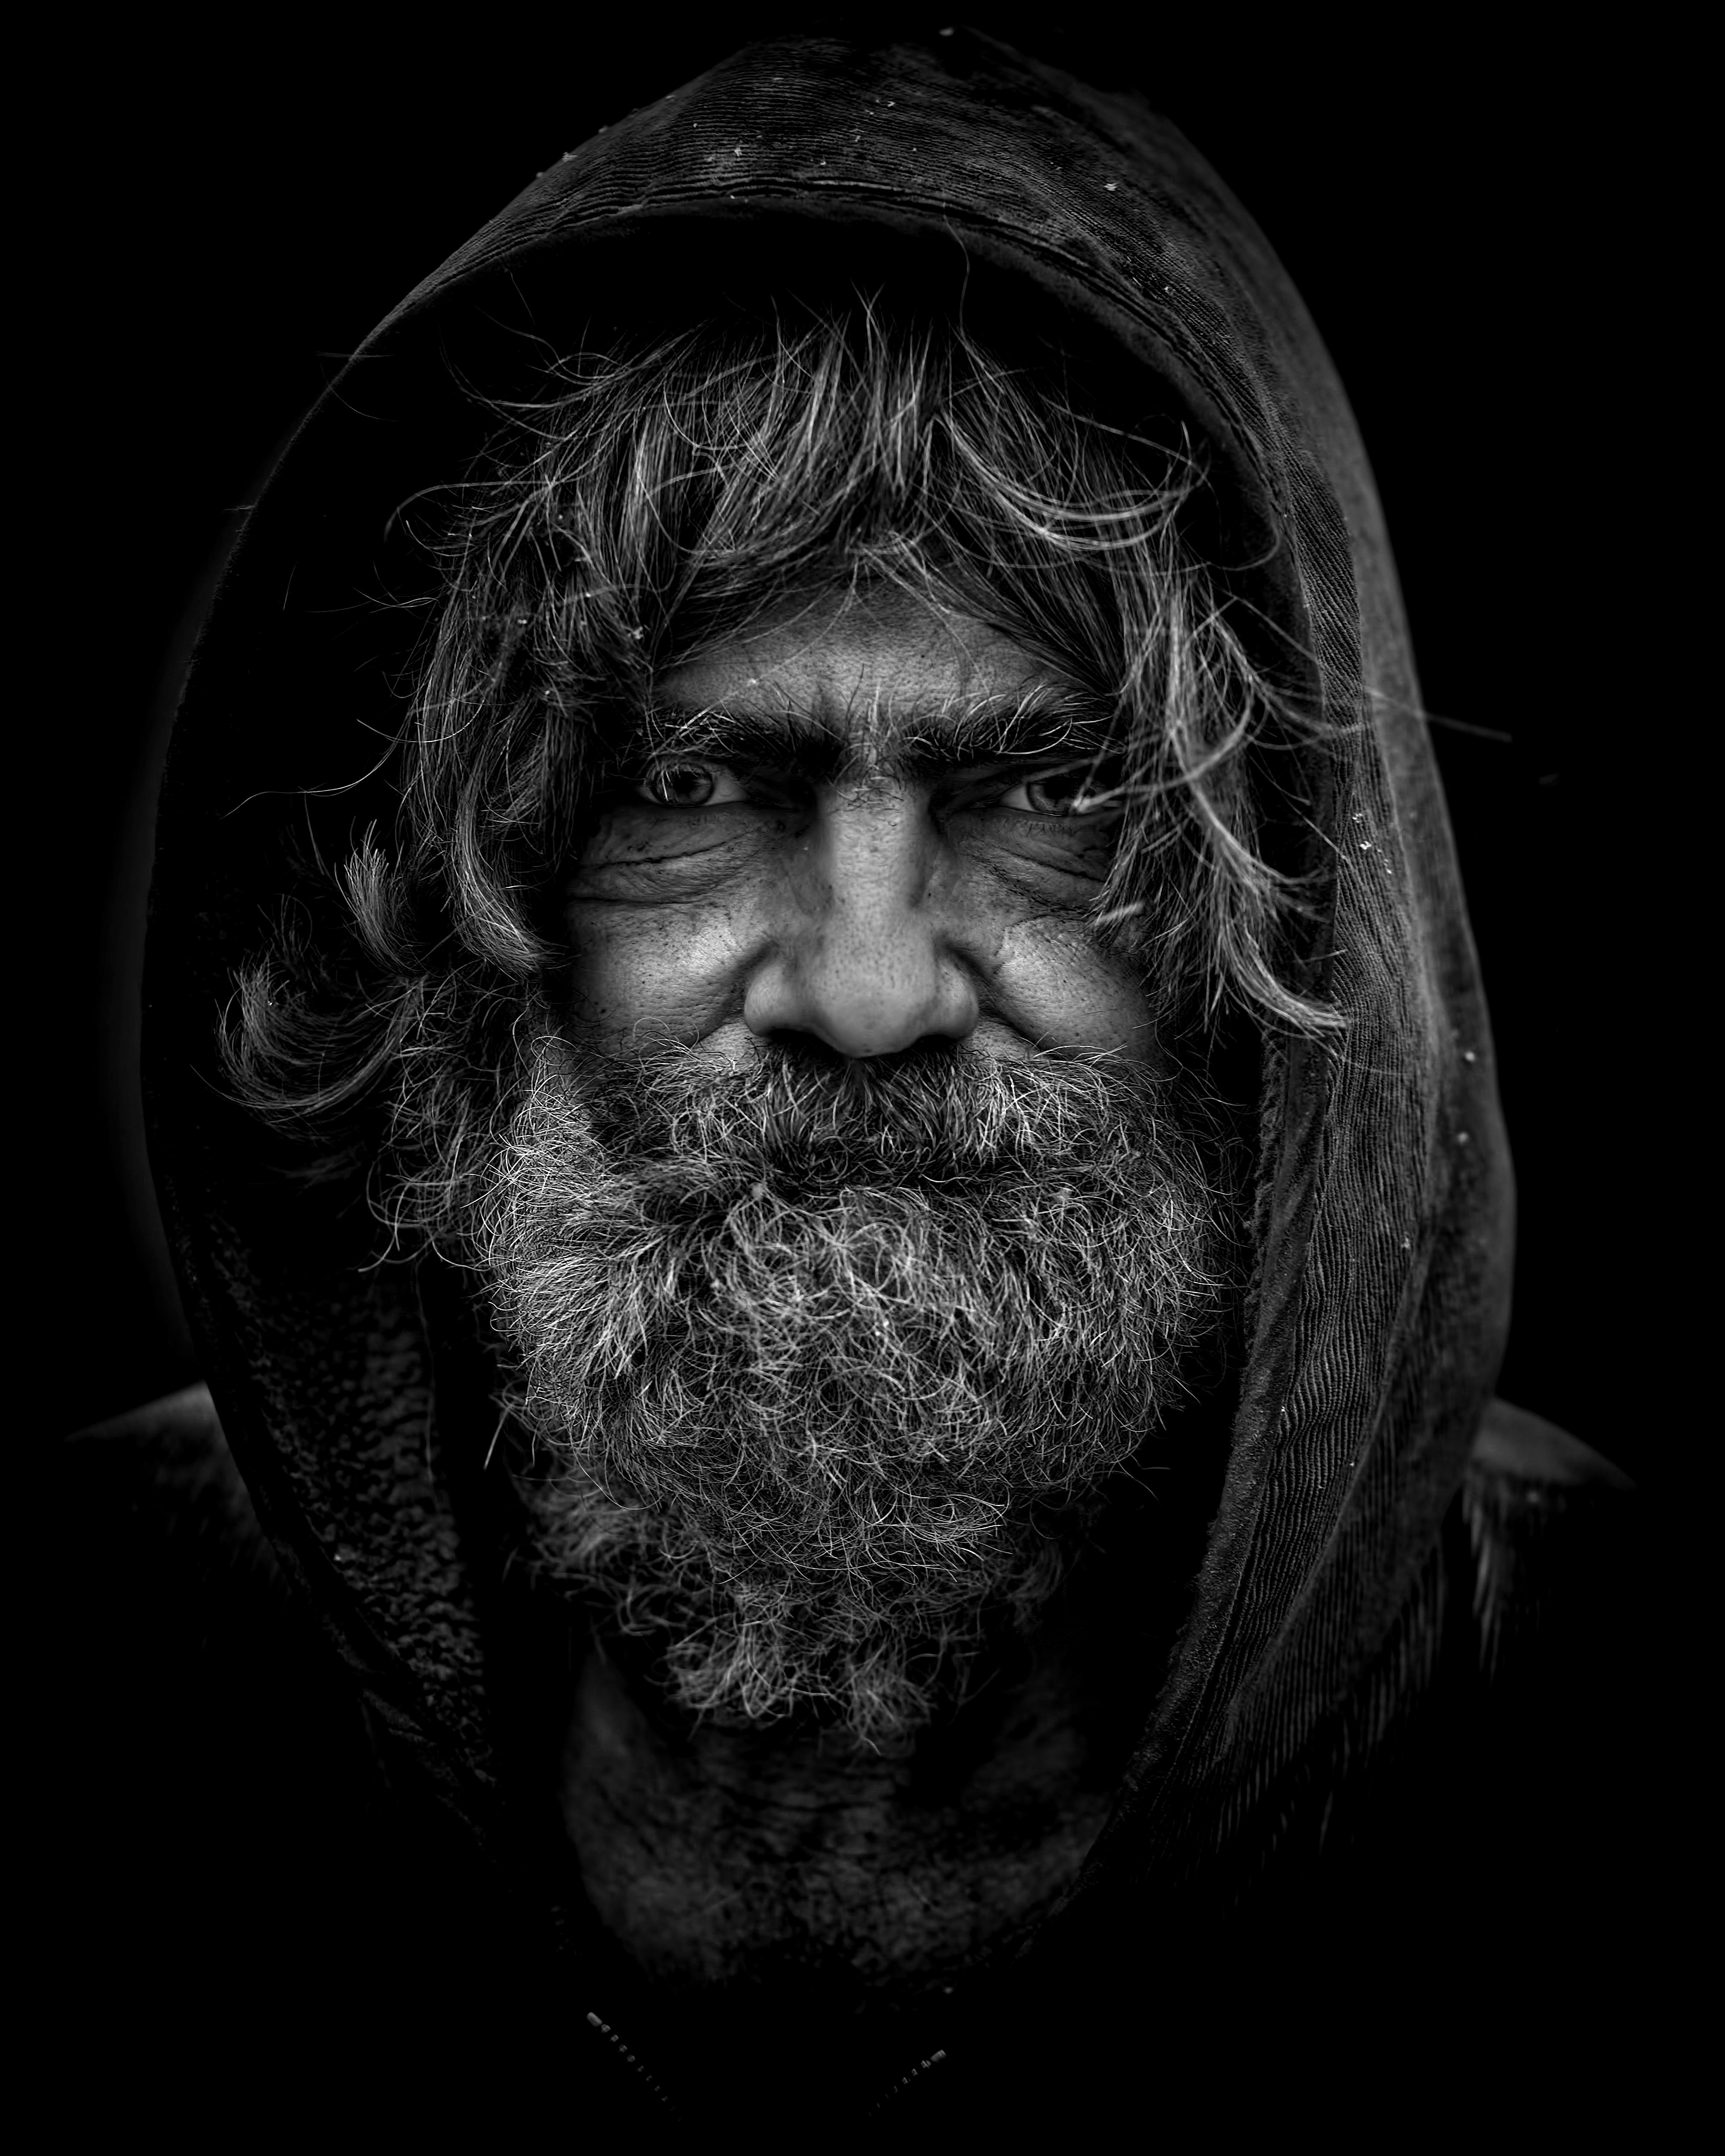 Pictured - An old man with beard wearing a hoodie | Source: Pexels